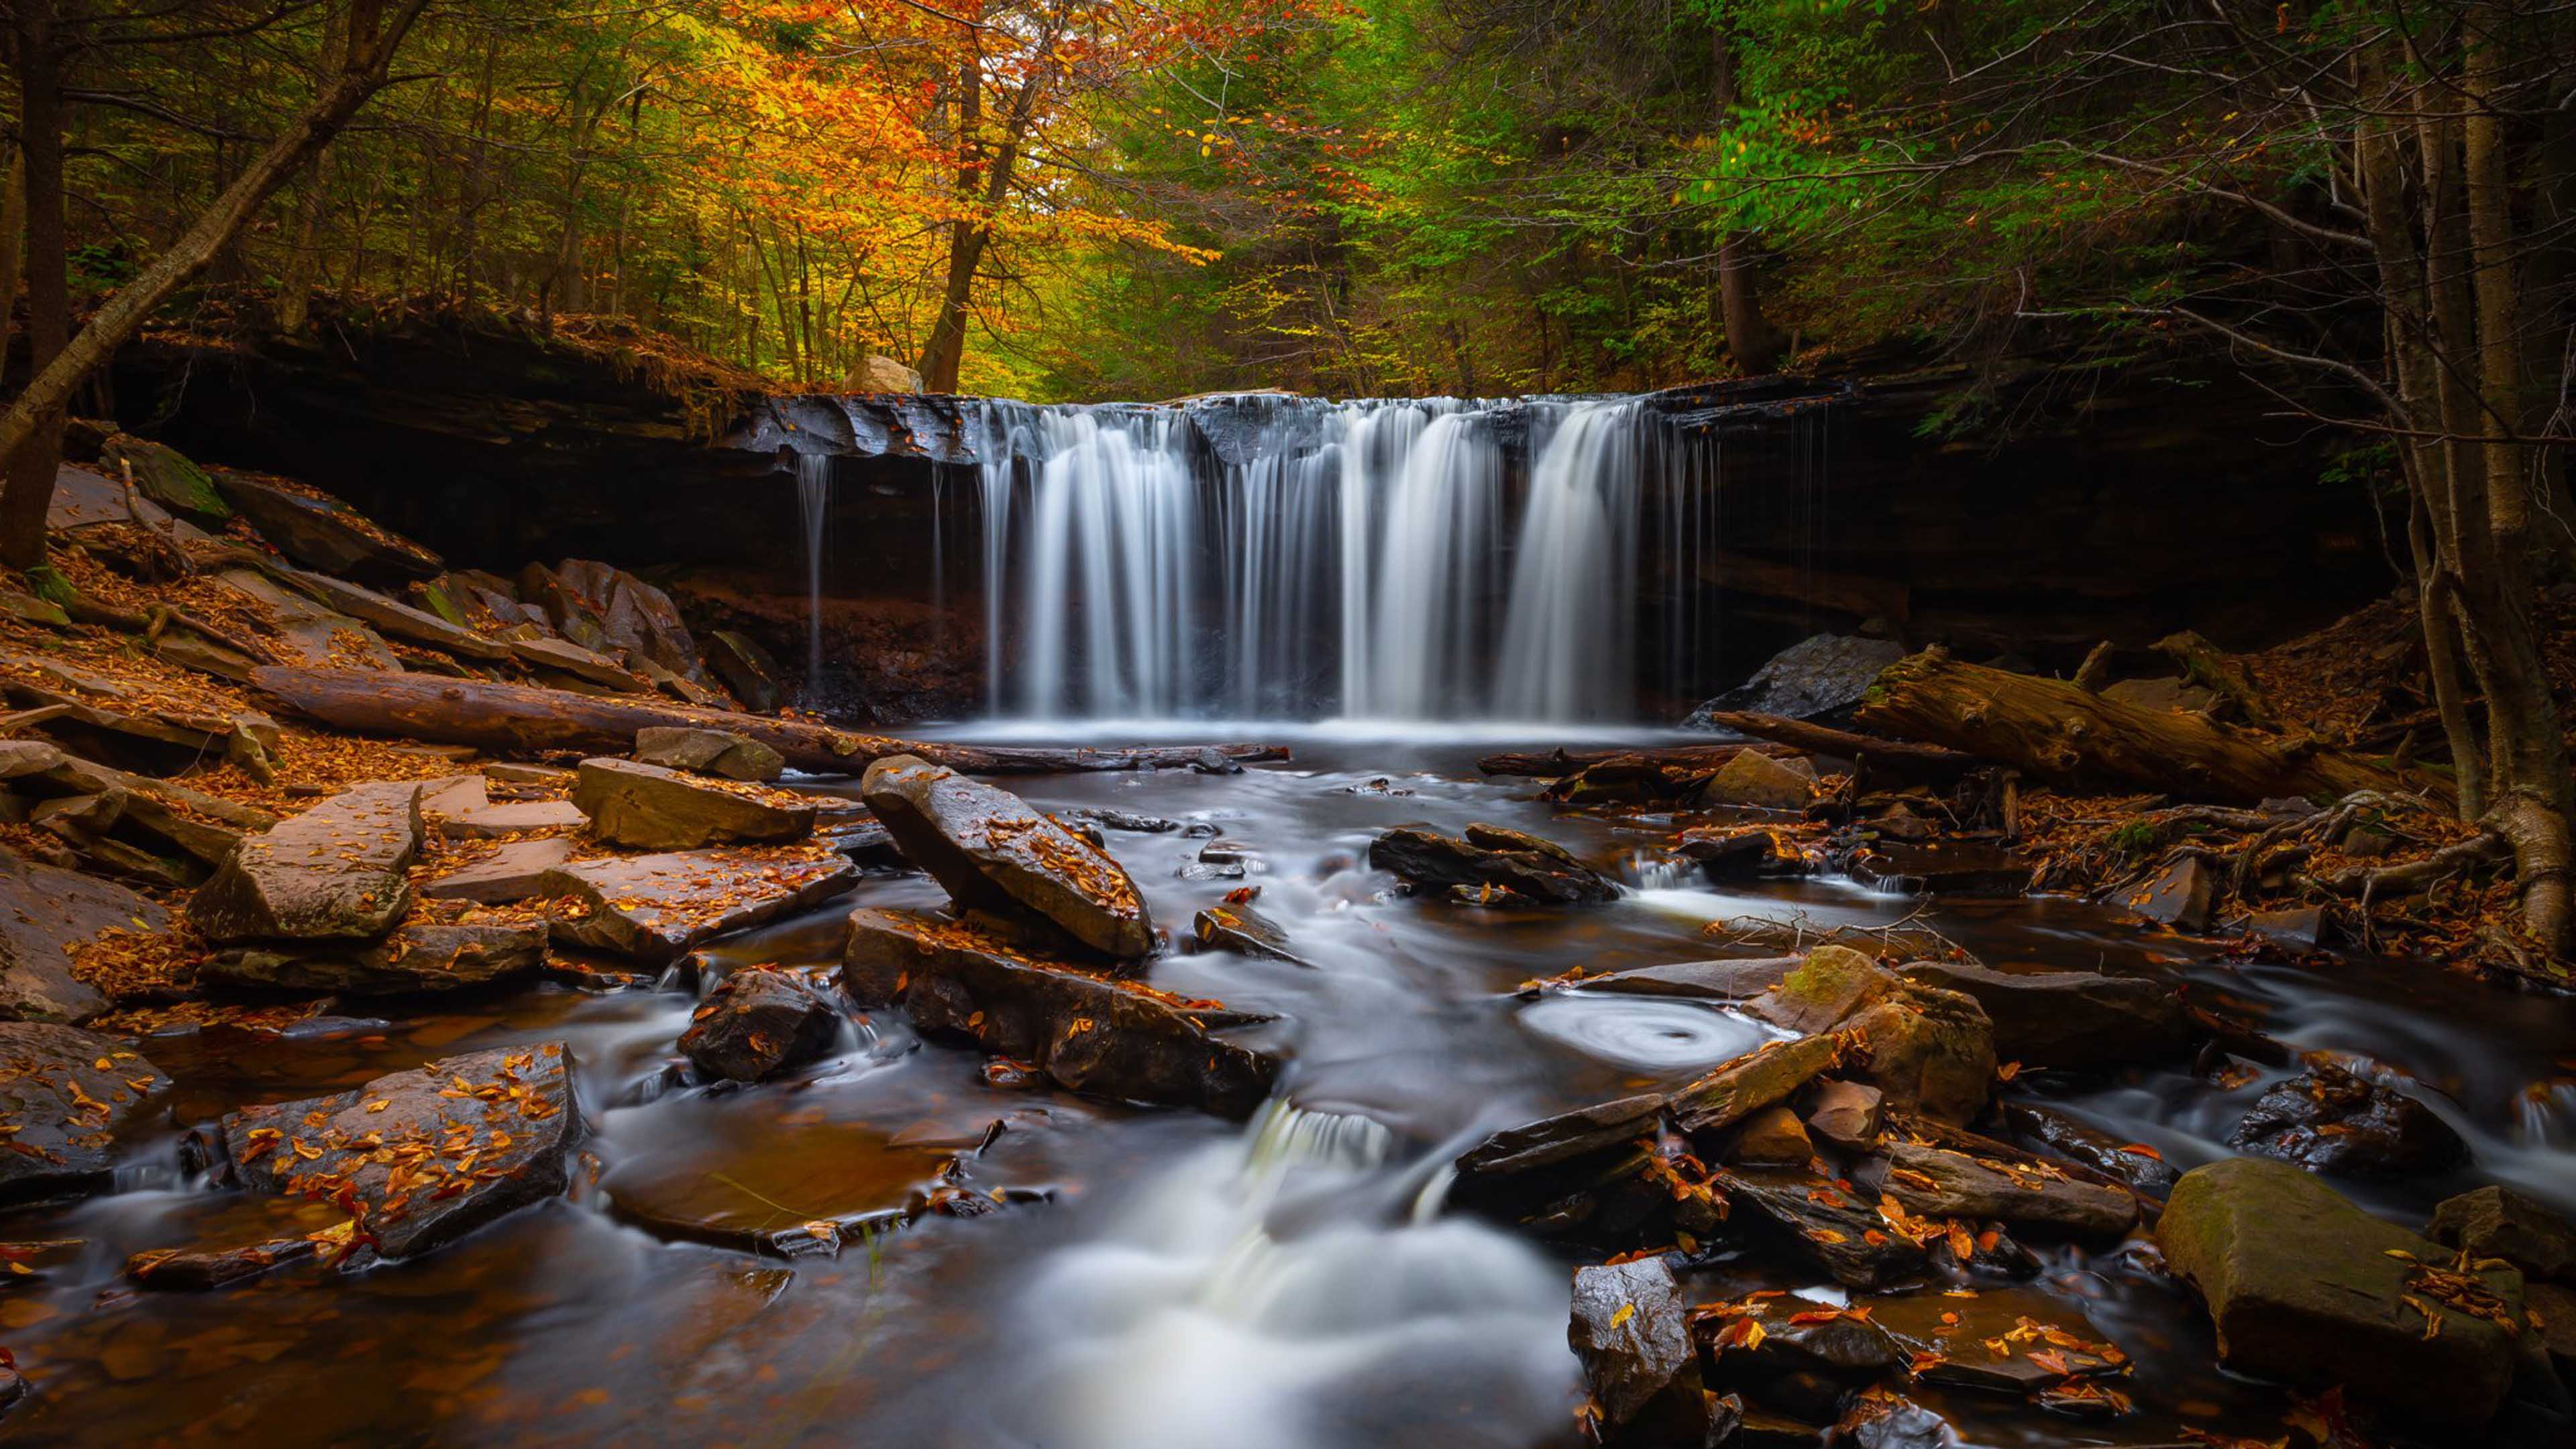 4k ultra hd wallpapers,waterfall,body of water,natural landscape,nature,water resources